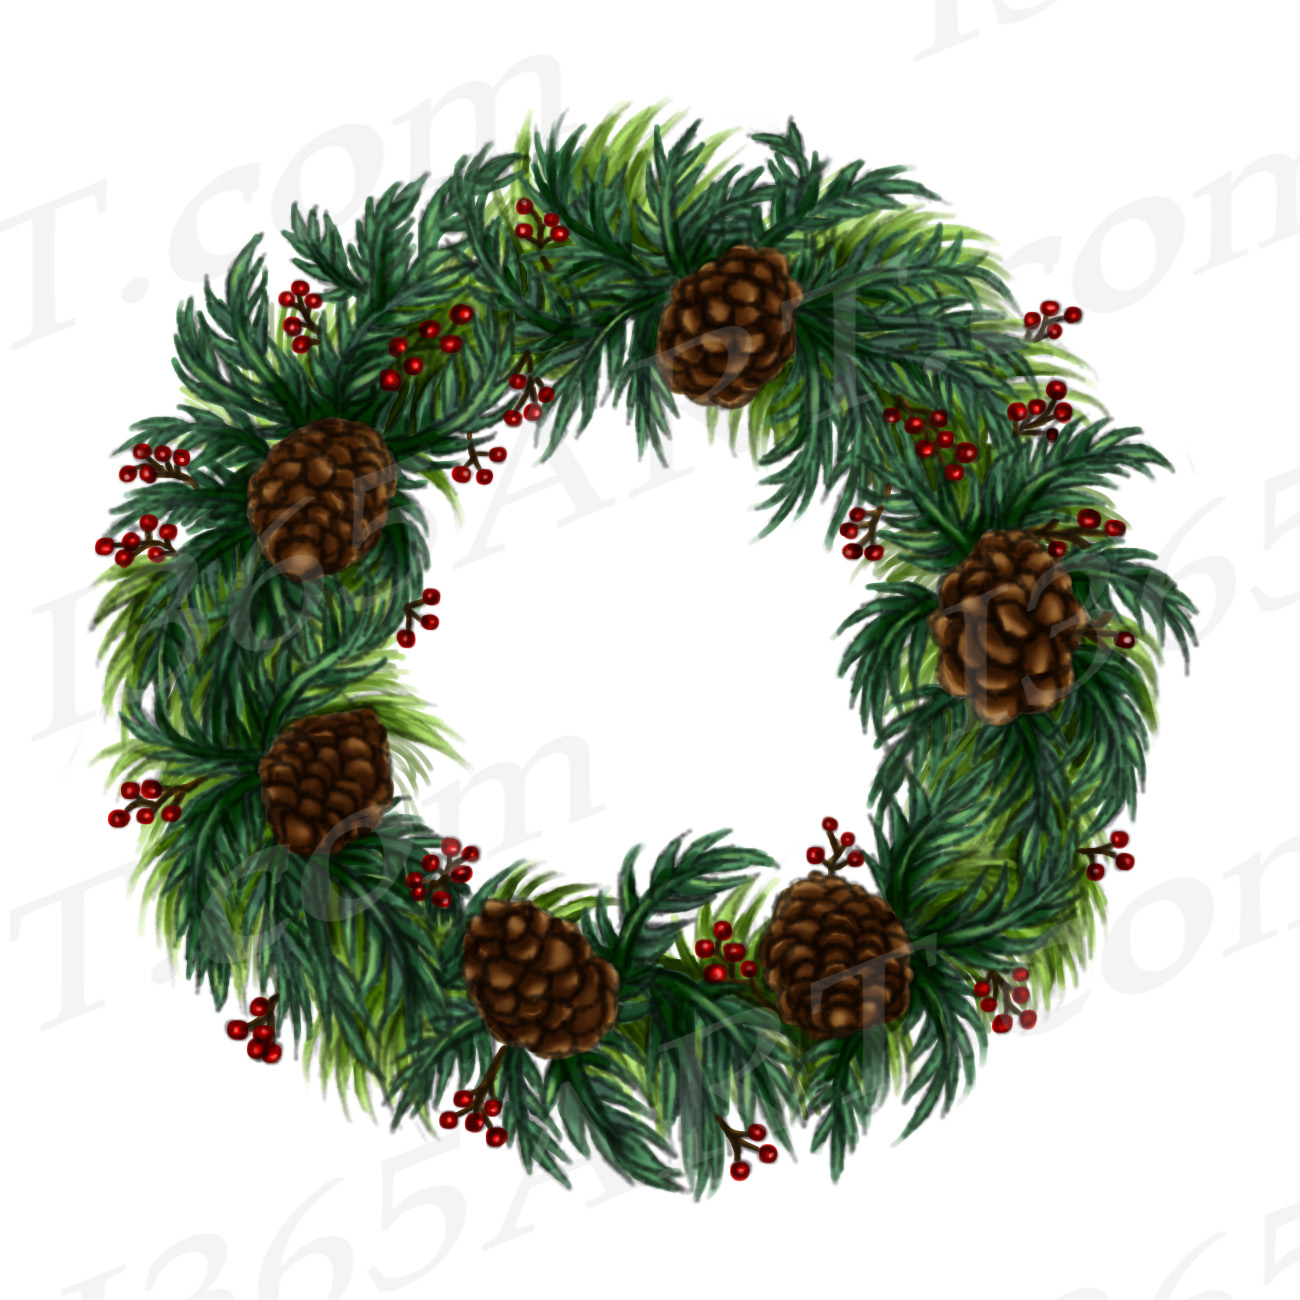 Winter Wreath Clipart, Watercolor Wreath Clip Art PNG.